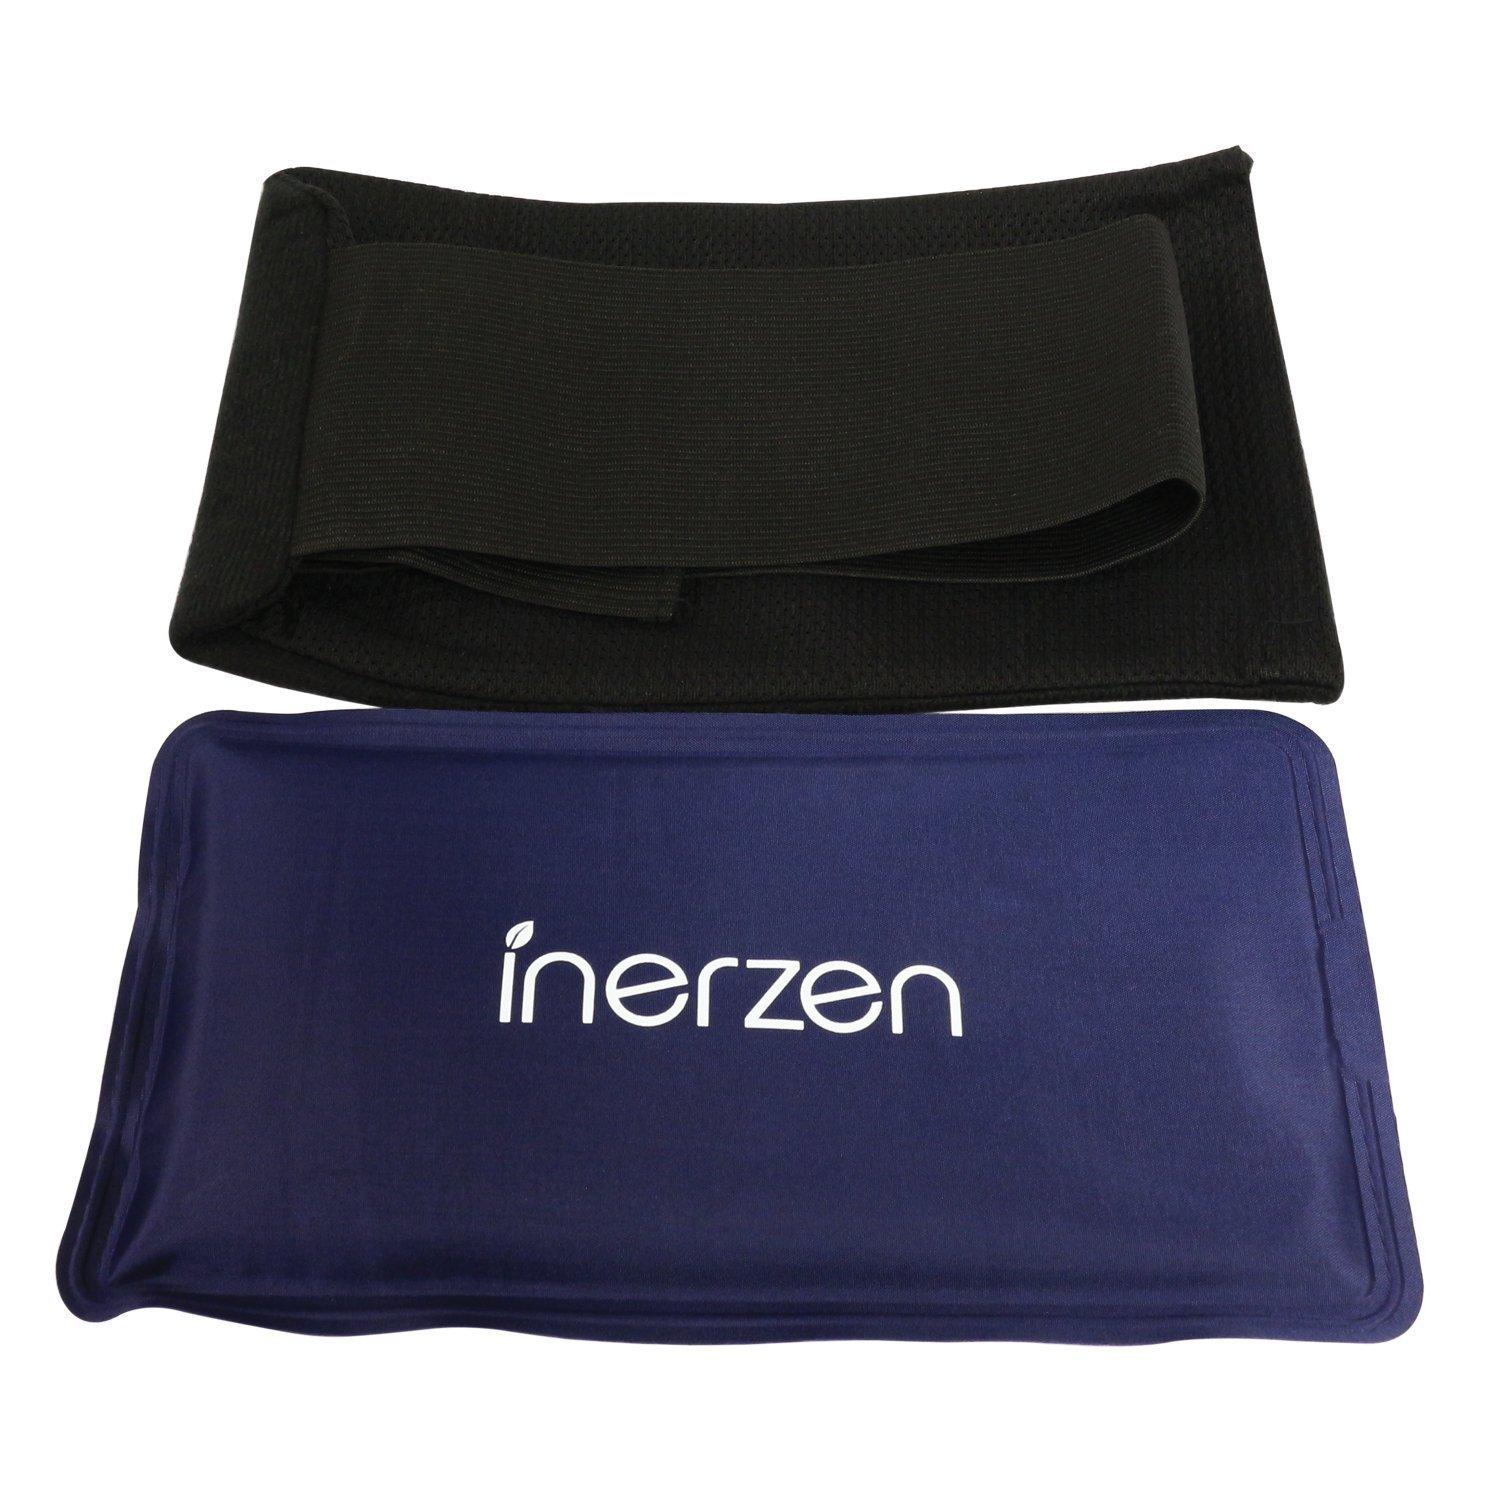 Inerzen Body and Knee Hot and Cold Gel Pad Therapy Adjustable Wrap for Arms, Legs, Thighs, Biceps, Elbows, Sports Pain Injuries, Muscle, Stress Relief by Inerzen